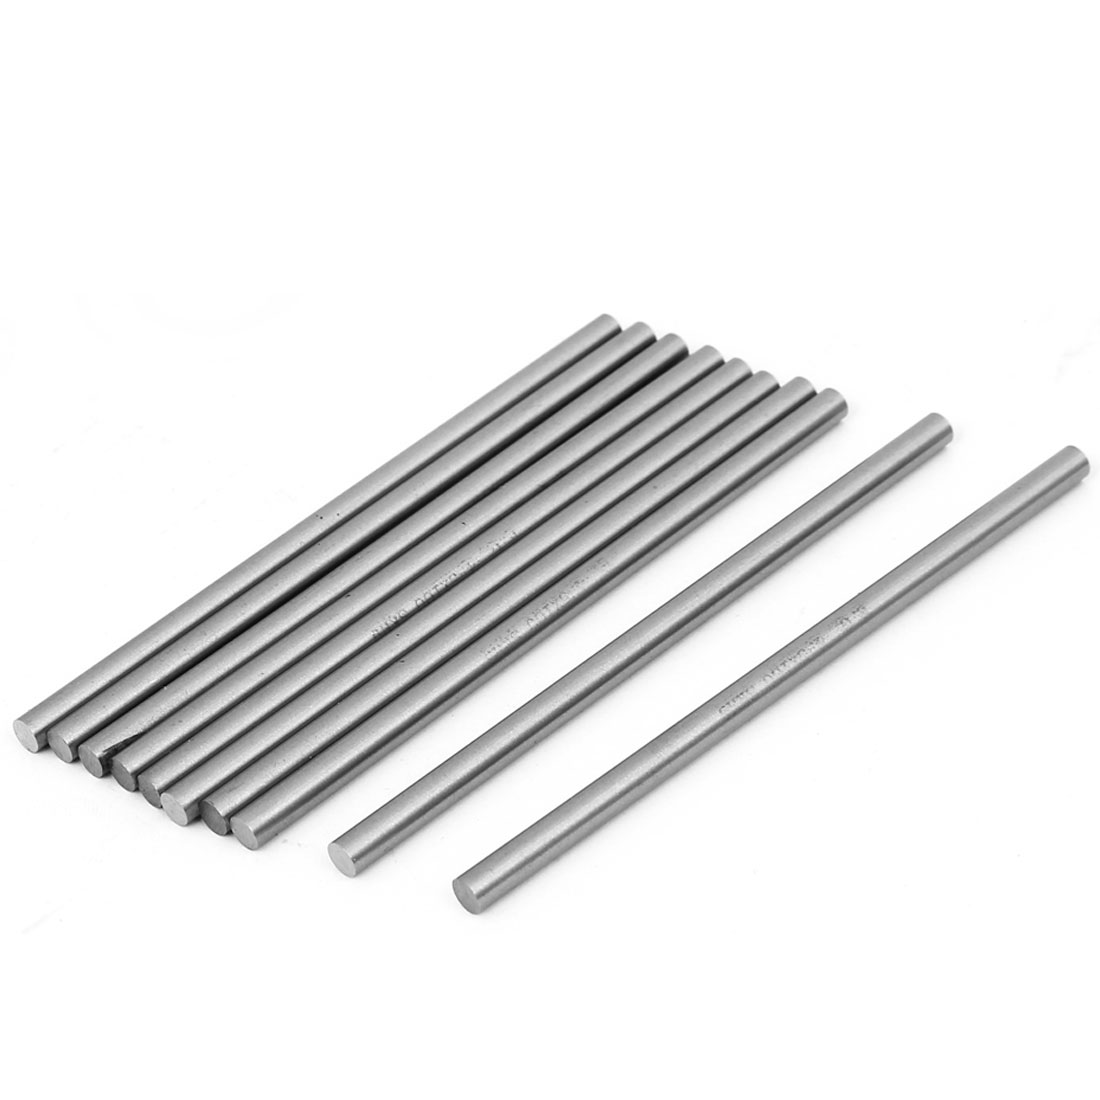 10pcs 4.5mm x 100mm HSS Round Rod Lathe Turning Tool Bar Silver Tone